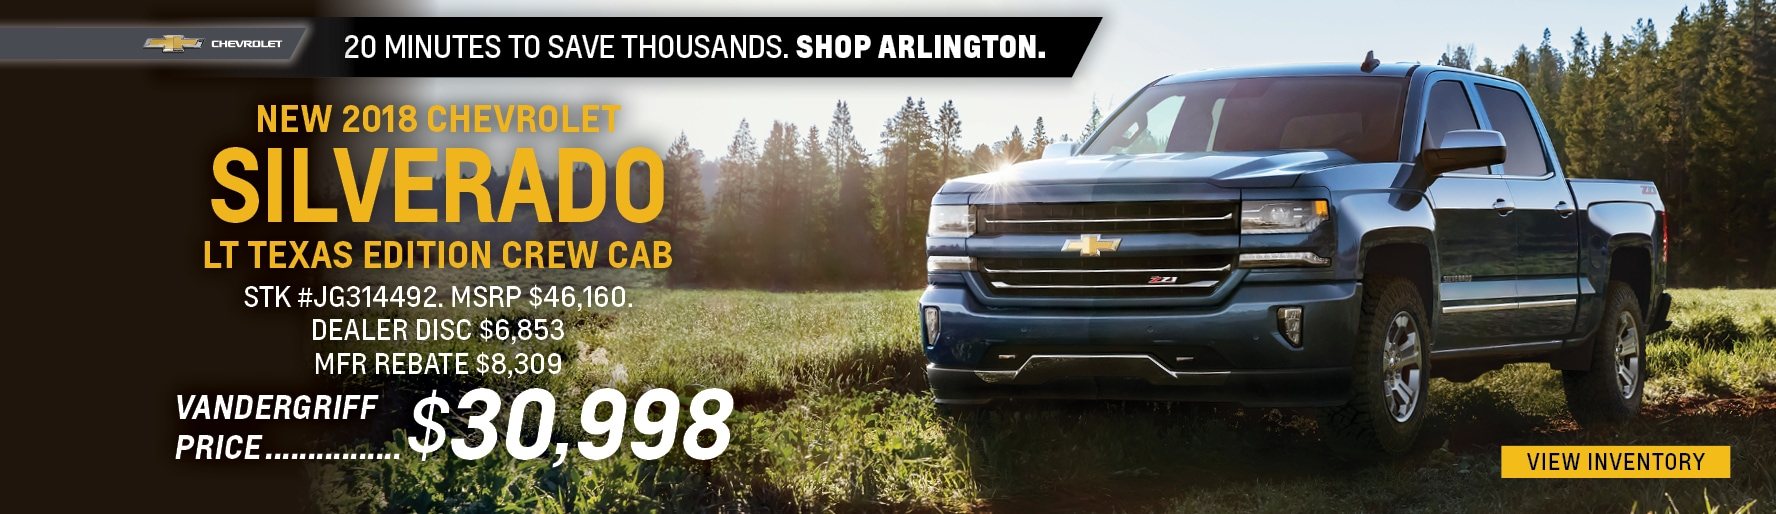 Chevy Cars For Sale in The Irving Area | Irving area Chevy Service